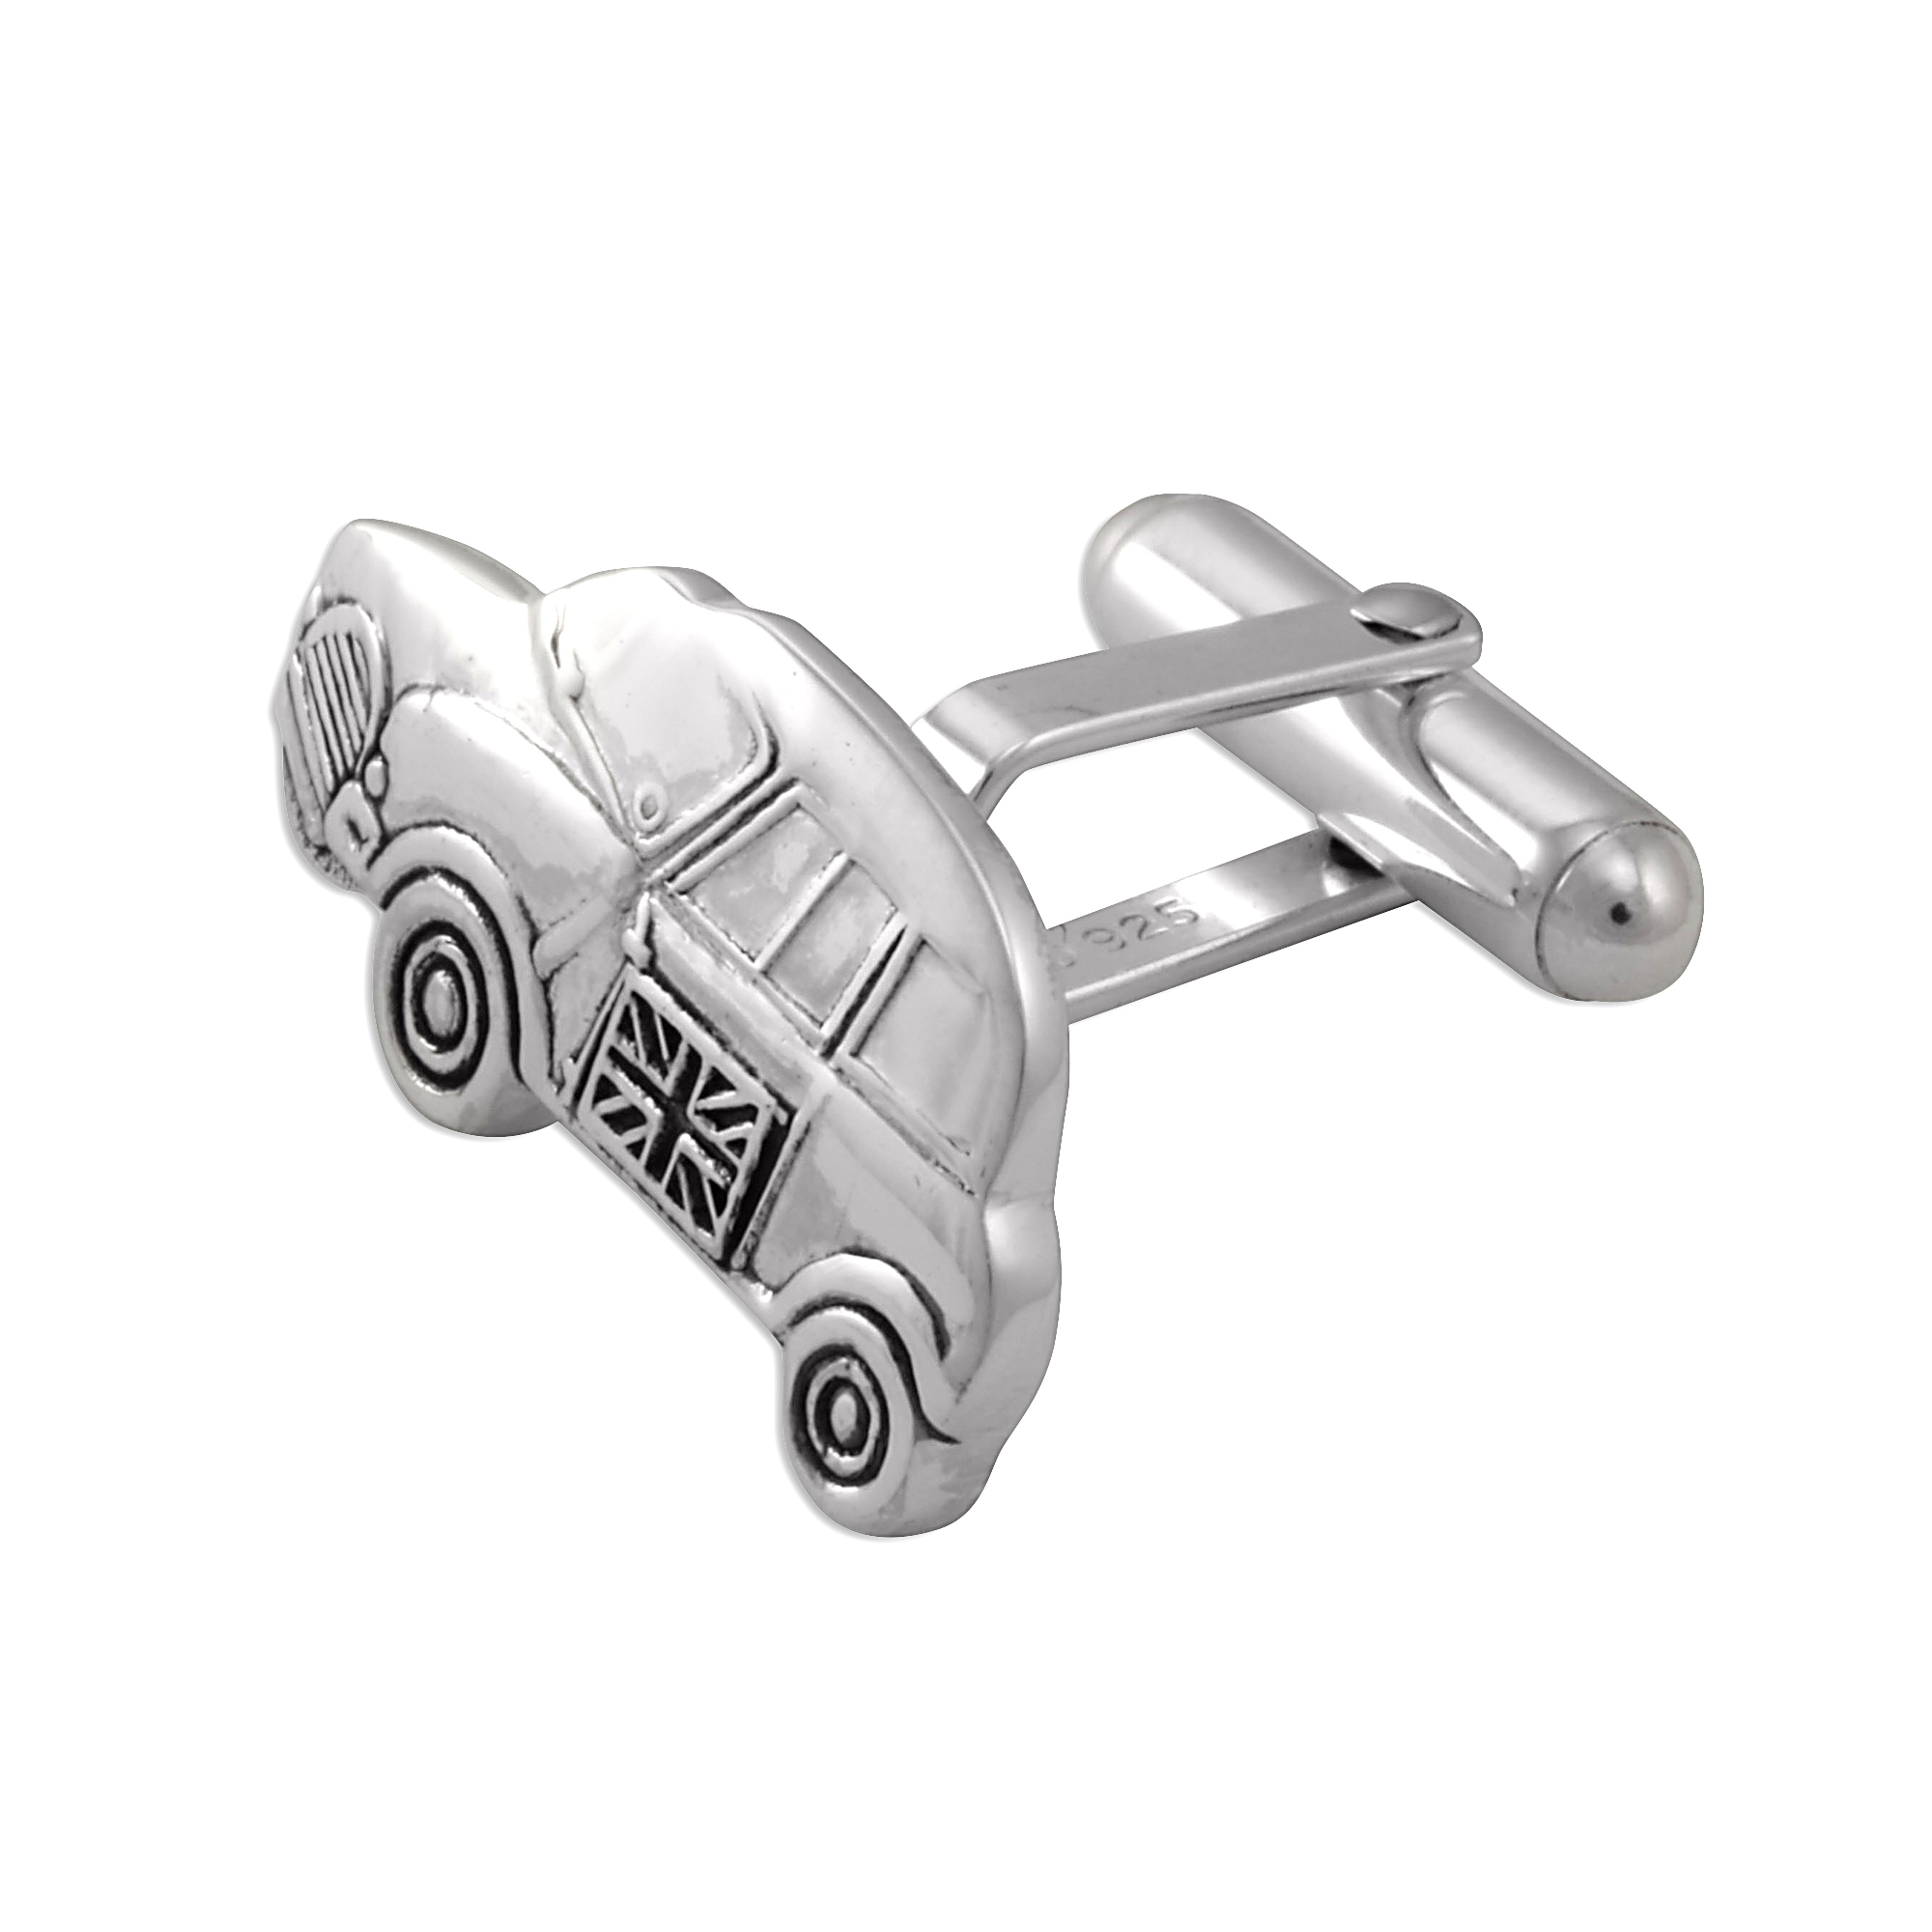 An image of Sterling Silver Mini Car Cufflinks